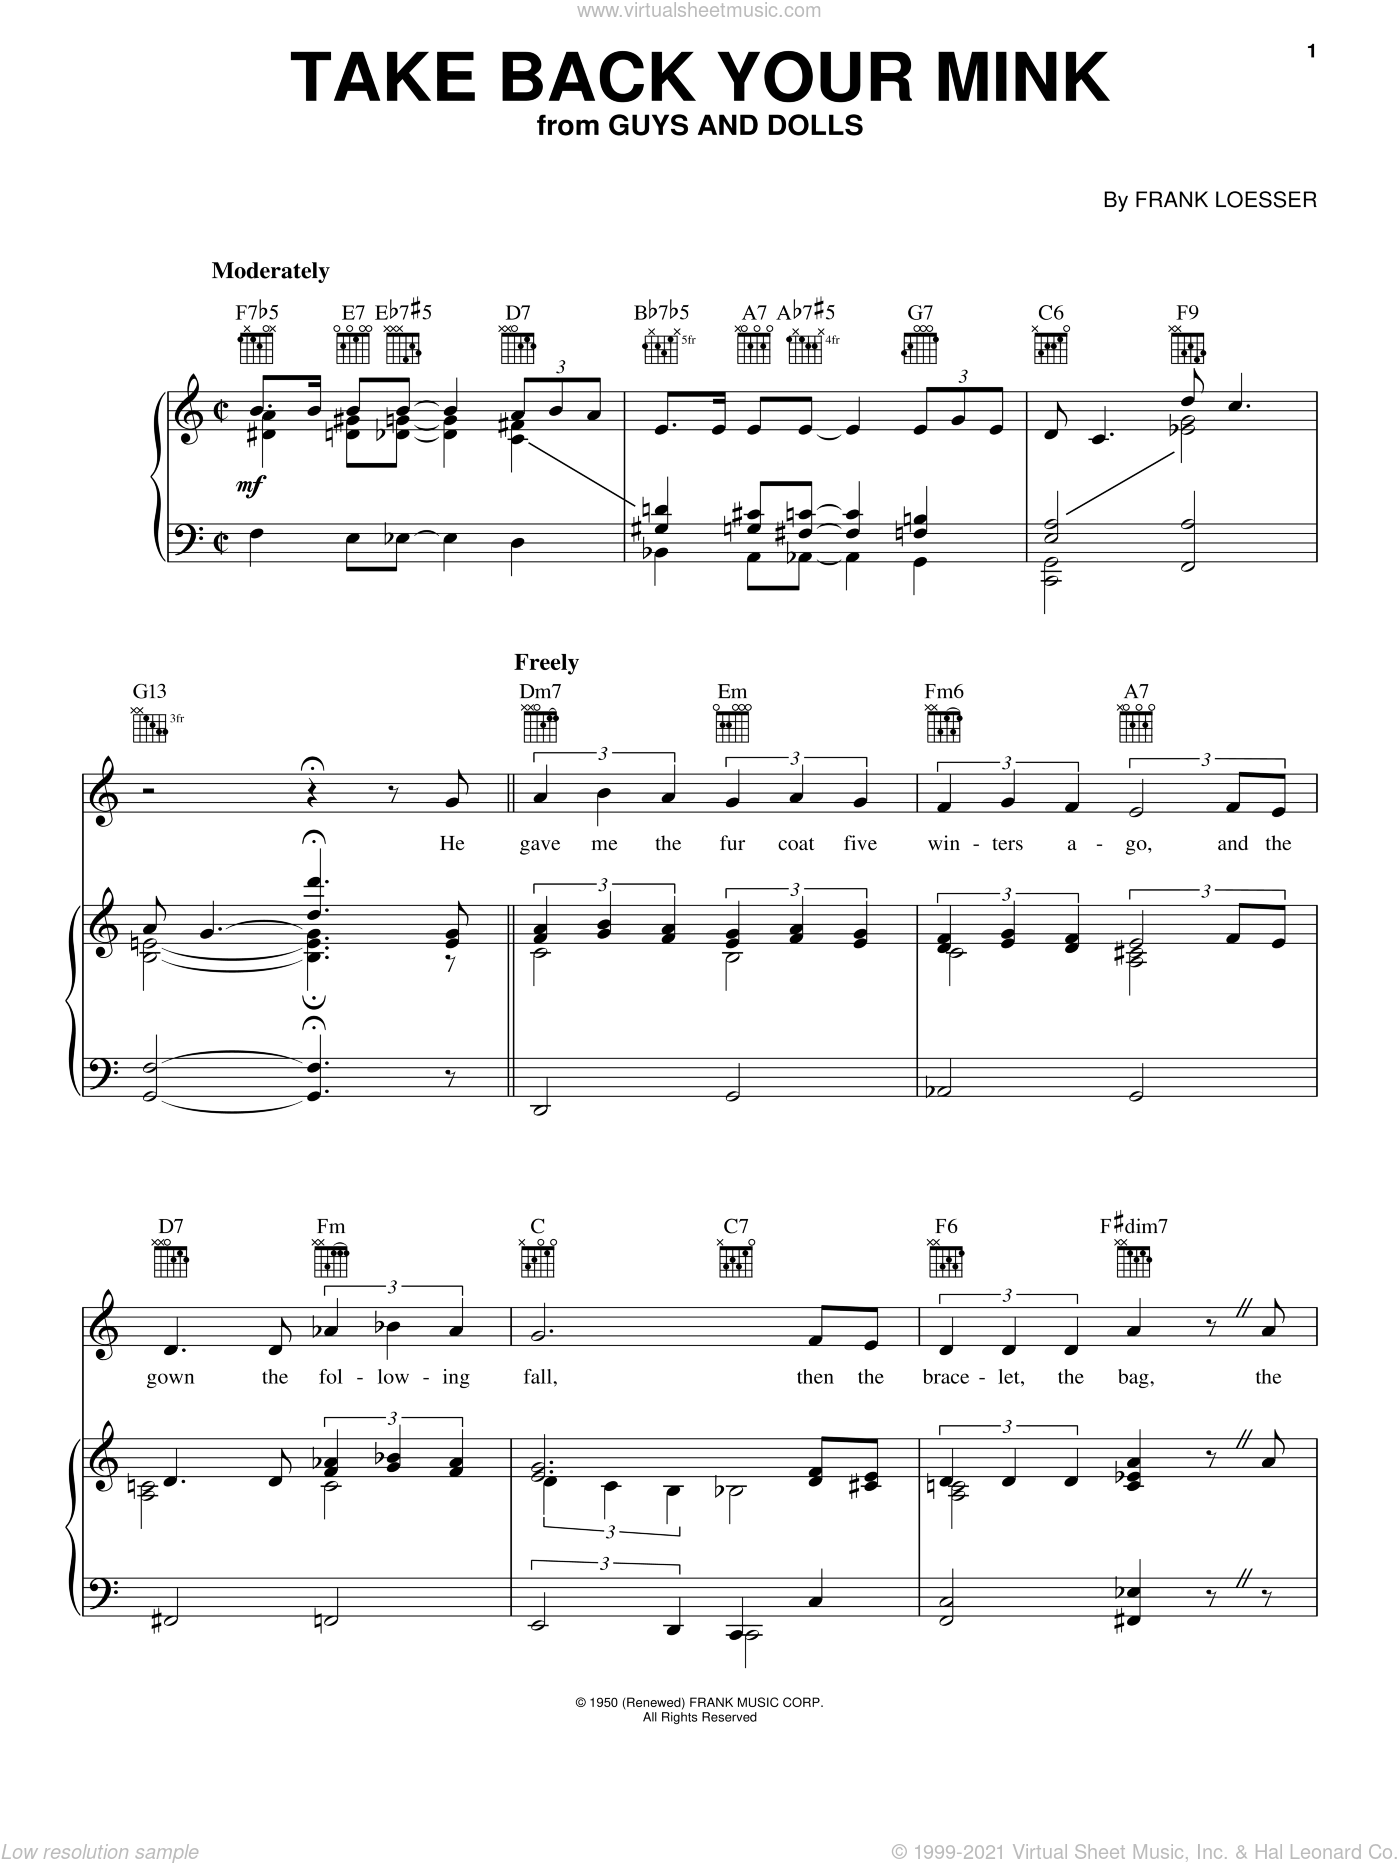 Take Back Your Mink sheet music for voice, piano or guitar by Frank Loesser and Guys And Dolls (Musical), intermediate skill level